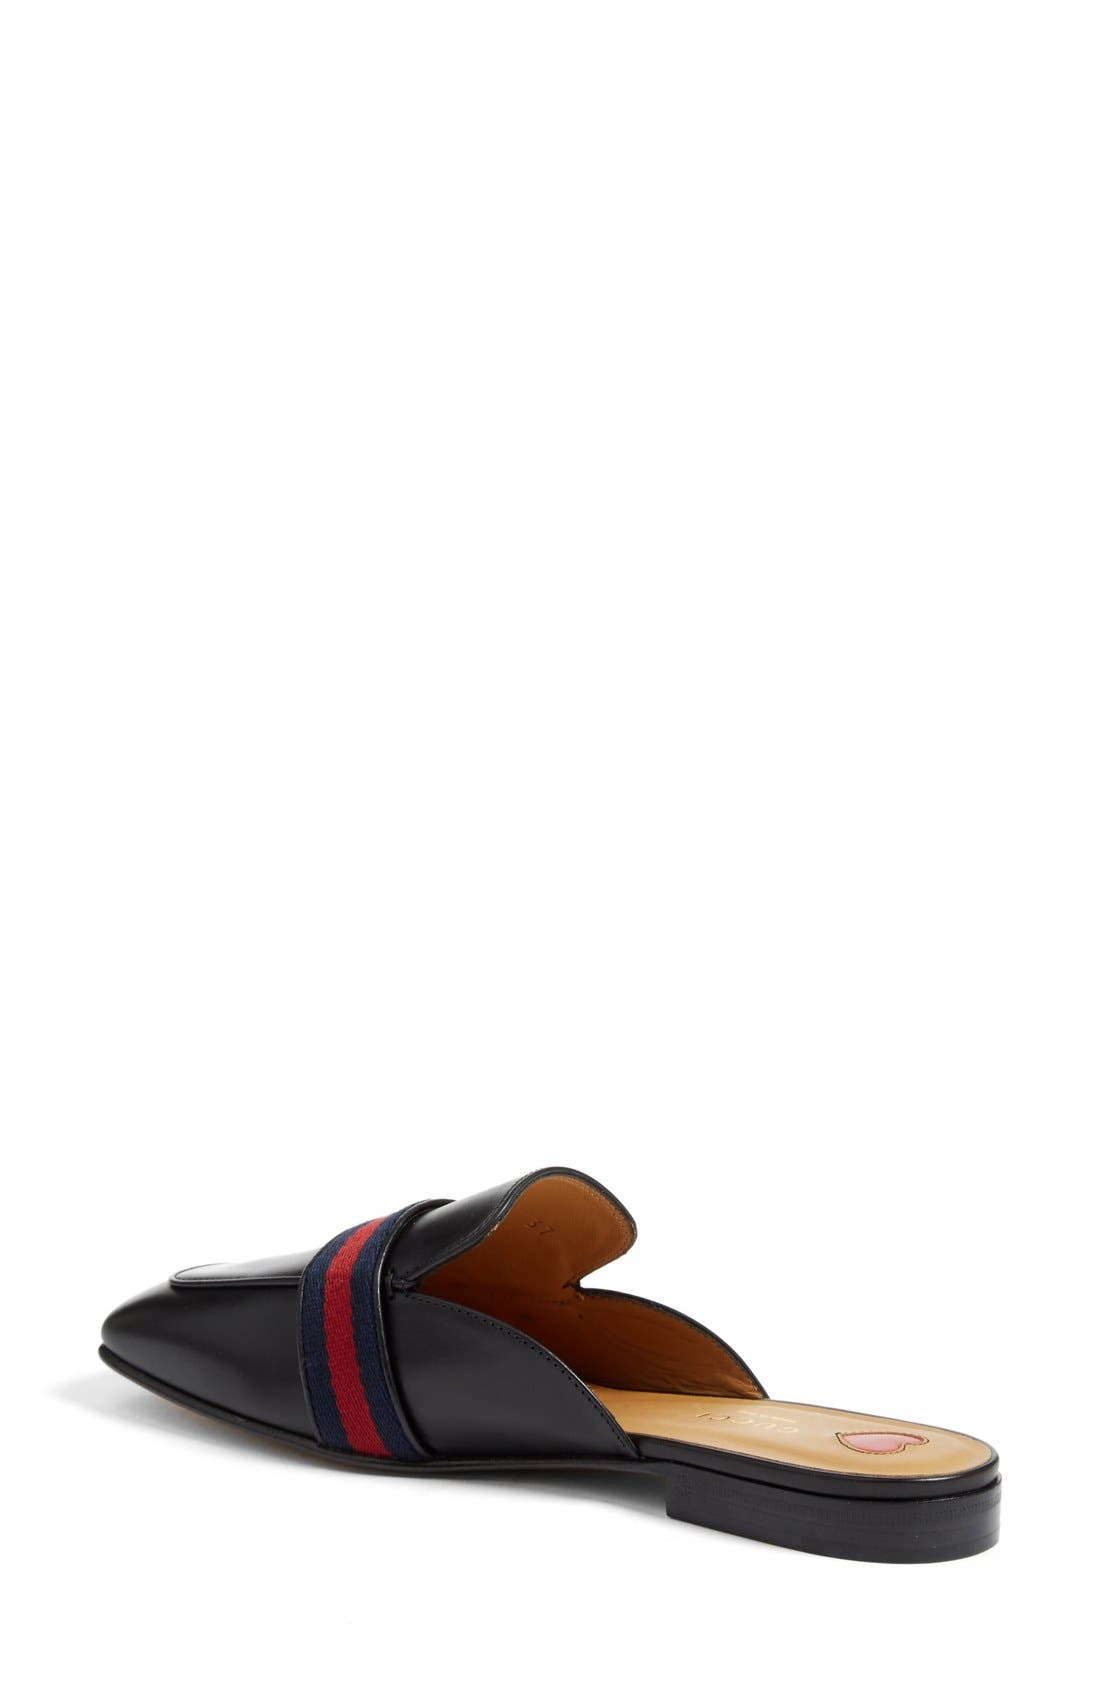 GUCCI, Loafer Mule, Alternate thumbnail 2, color, BLACK LEATHER